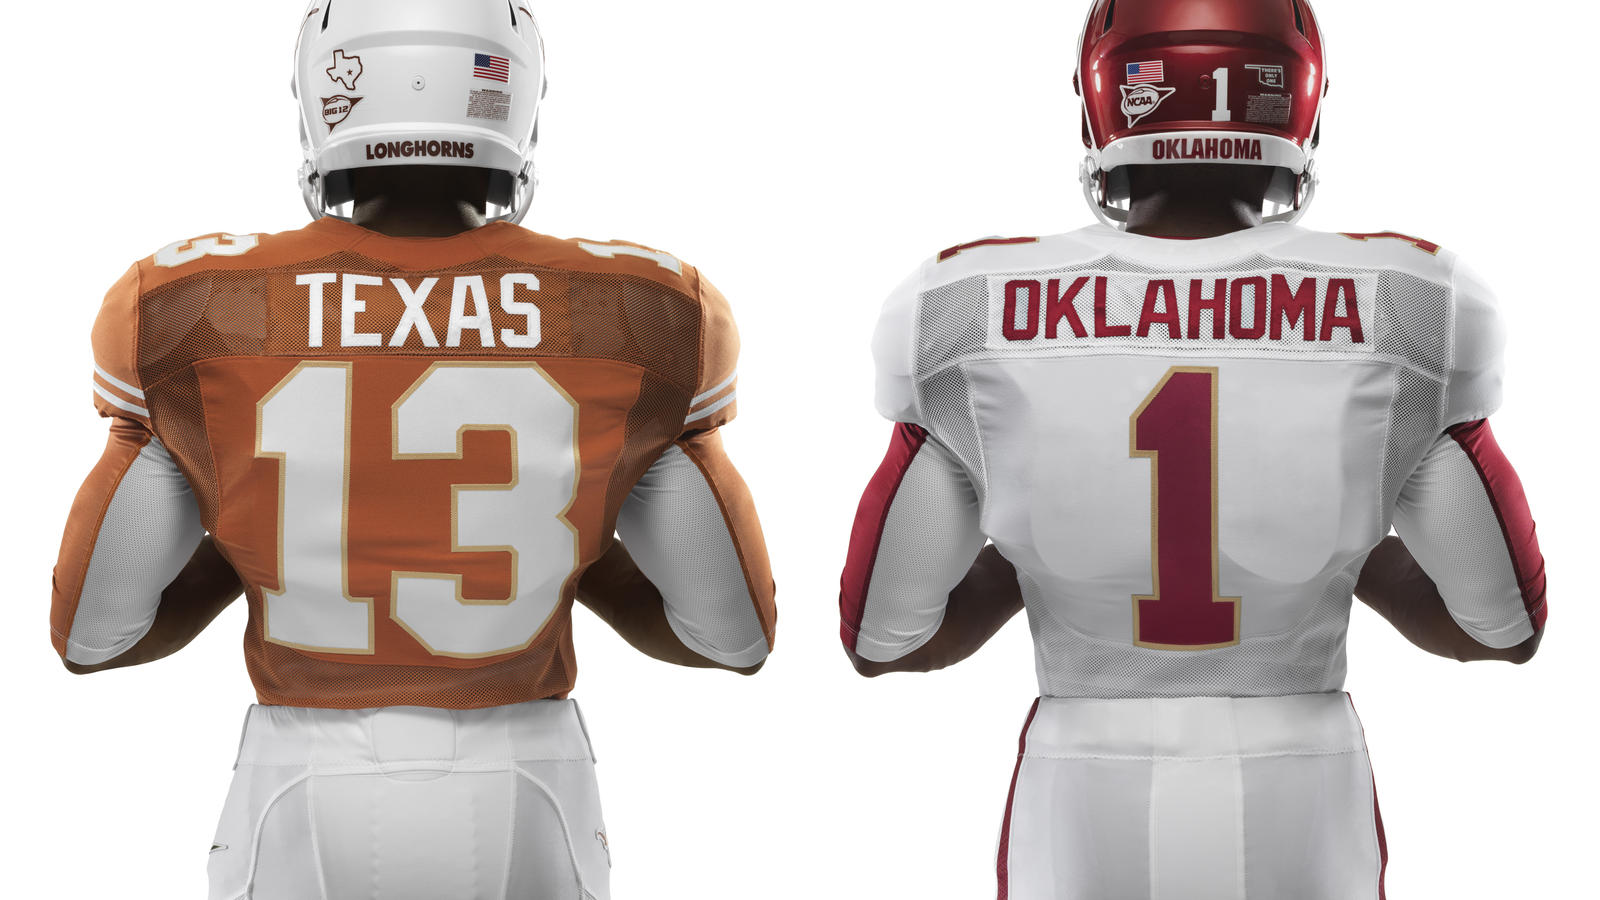 Nike Football Uniforms for Red River